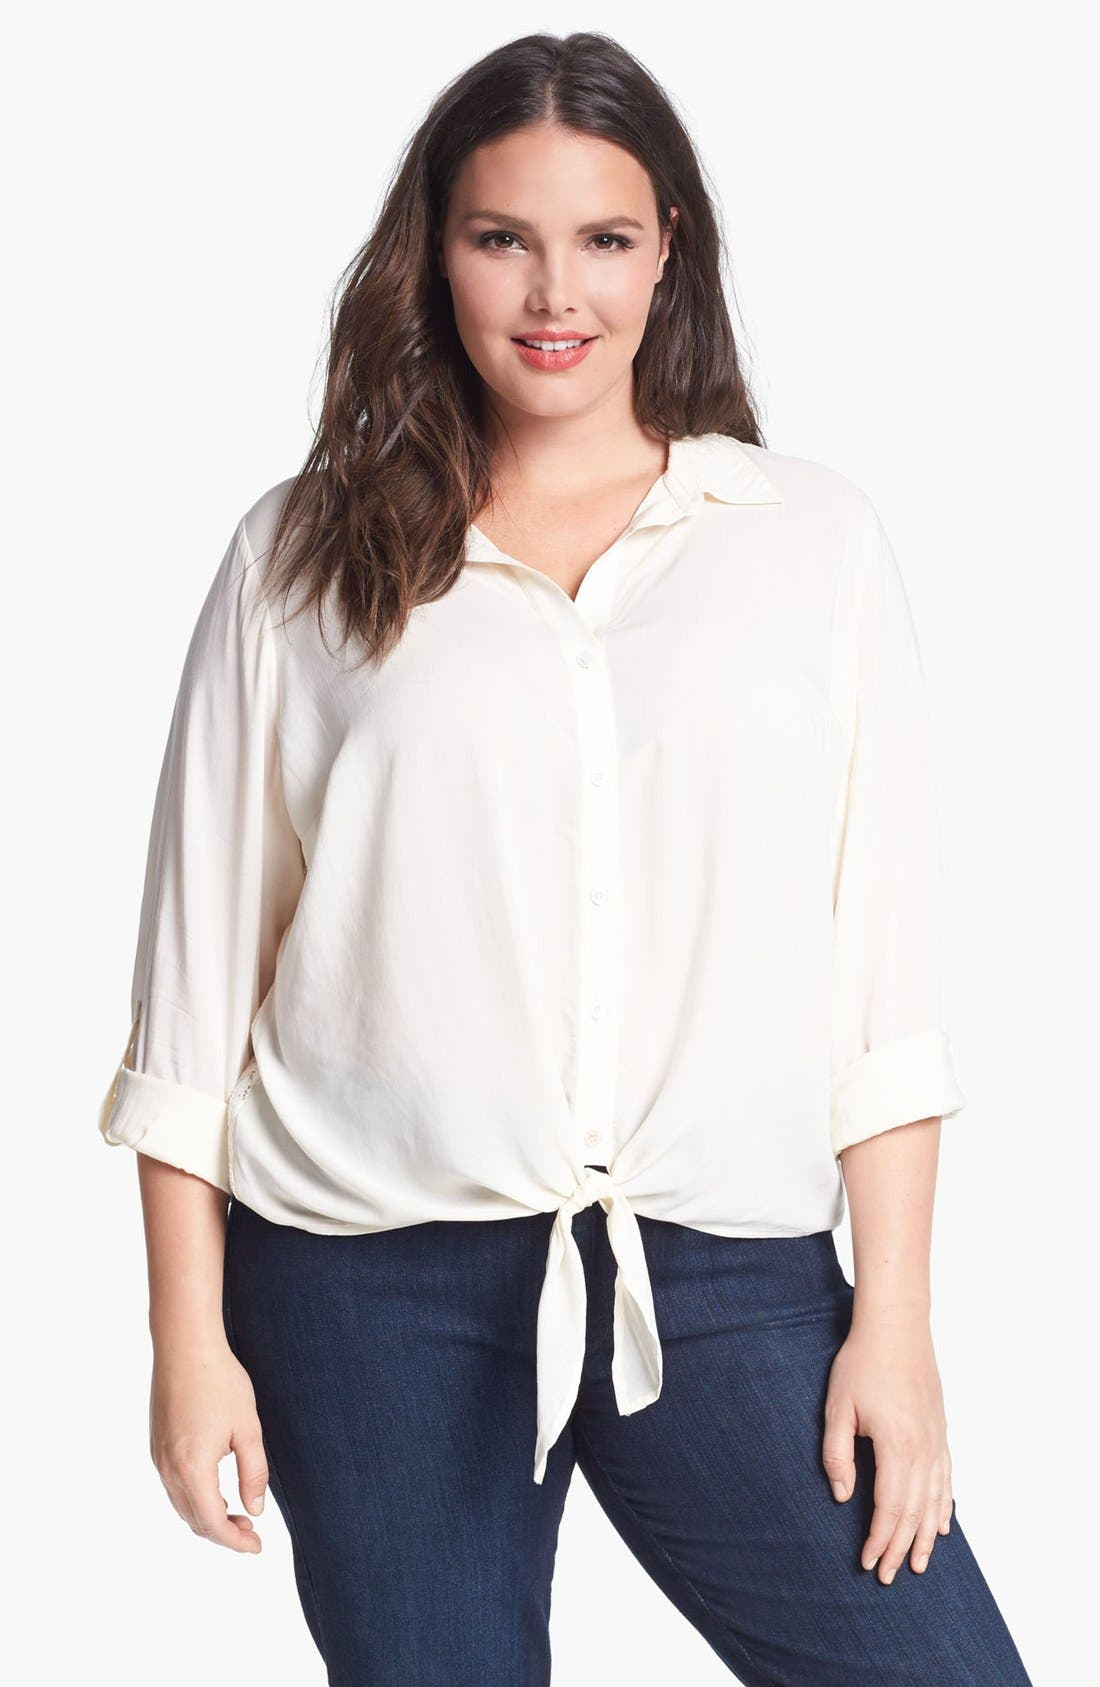 Alternate Image 1 Selected - Two by Vince Camuto Front Tie Lace Back Shirt (Plus Size)